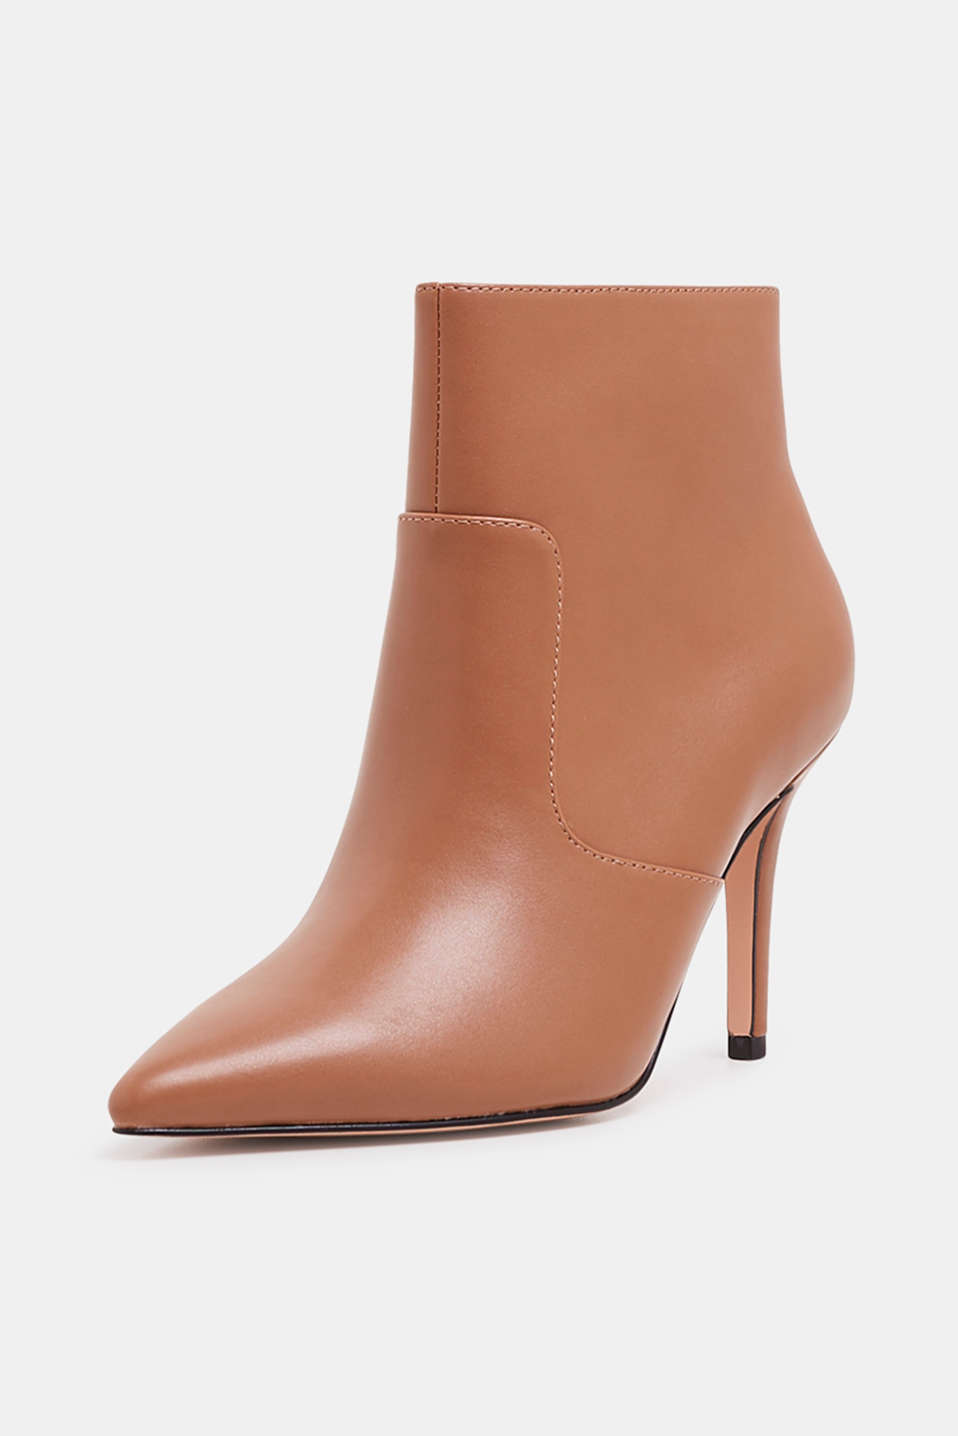 Ankle boots with kitten heel, made of faux leather, CAMEL, detail image number 2